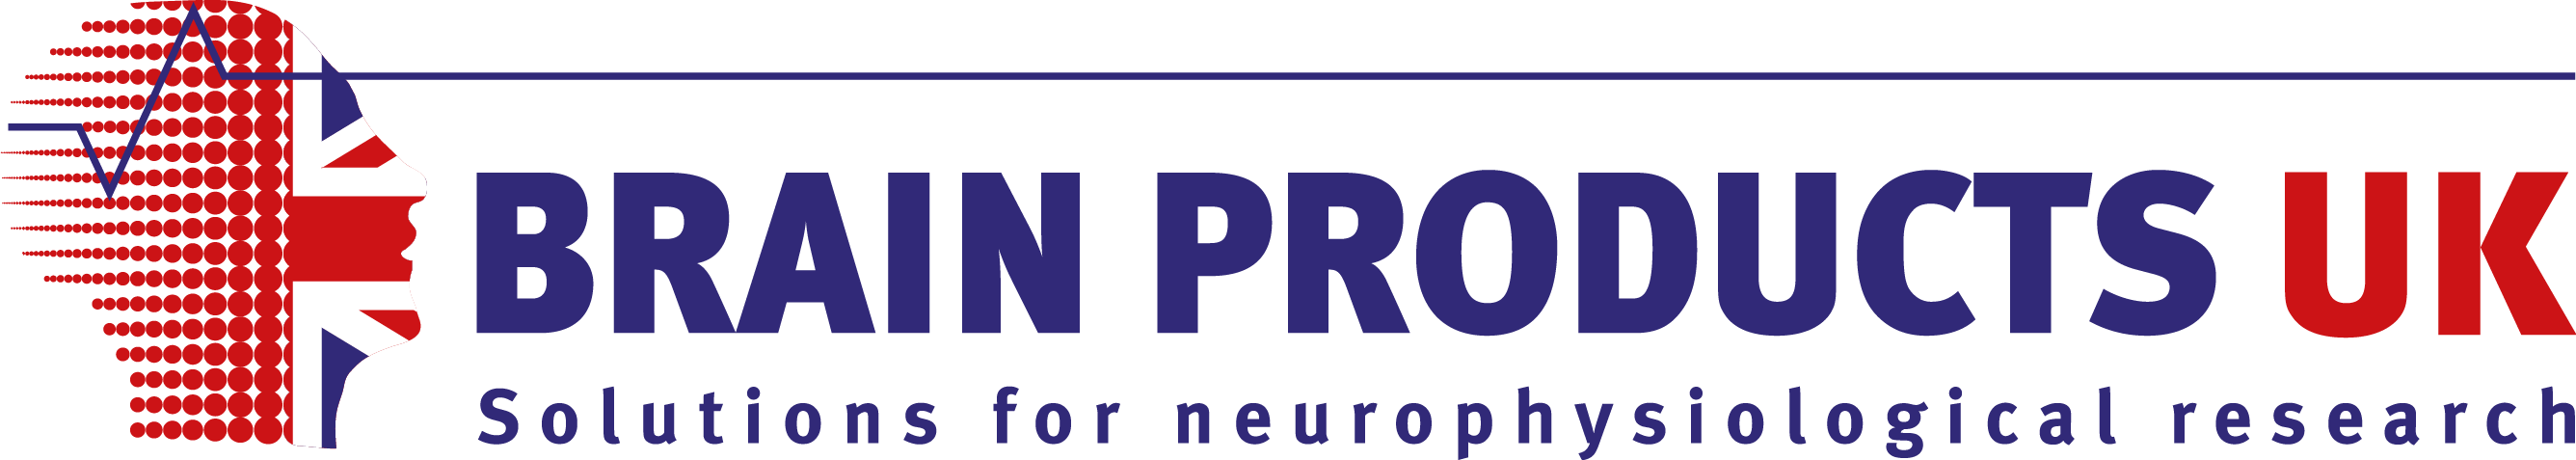 Brain Products UK Logo